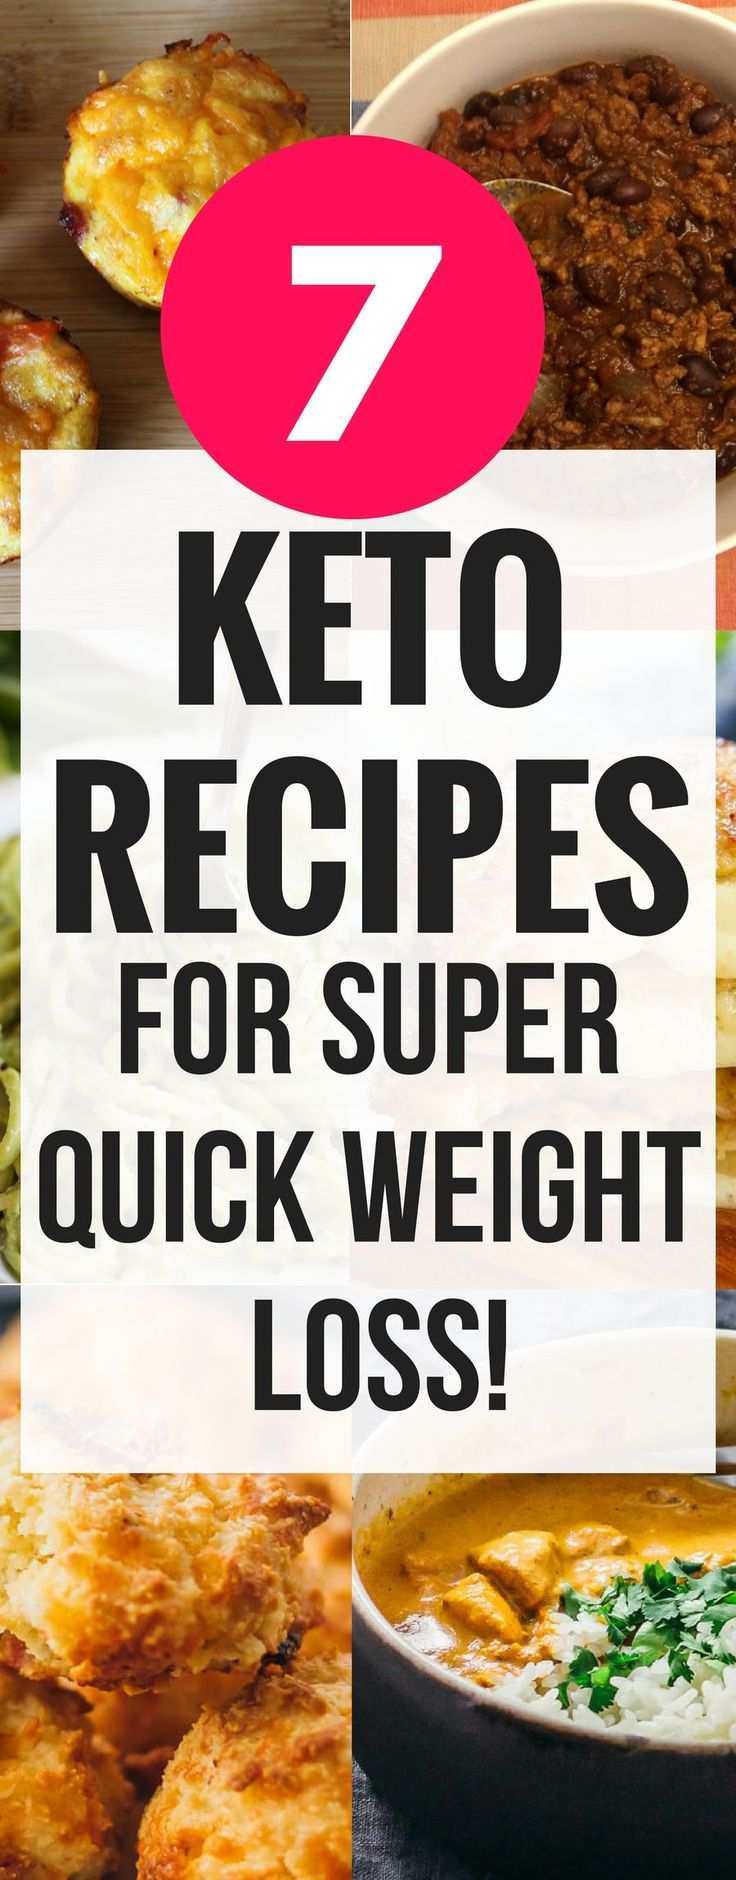 These 7 ketogenic recipes that help with weight loss are THE BEST! I'm so glad I found such great tasting keto recipes that I can use for breakfast, lunch and dinner. Now I can enjoy tons of great recipes while on the keto diet. pinning this for sure! #keto #ketogenicdiet #ketogenic #dinner #recipes #weightloss #weightlossrecipes Being overweight or clinically obese is a condition that's caused by having a high calorie intake and low energy expenditure. In order to lose weight...